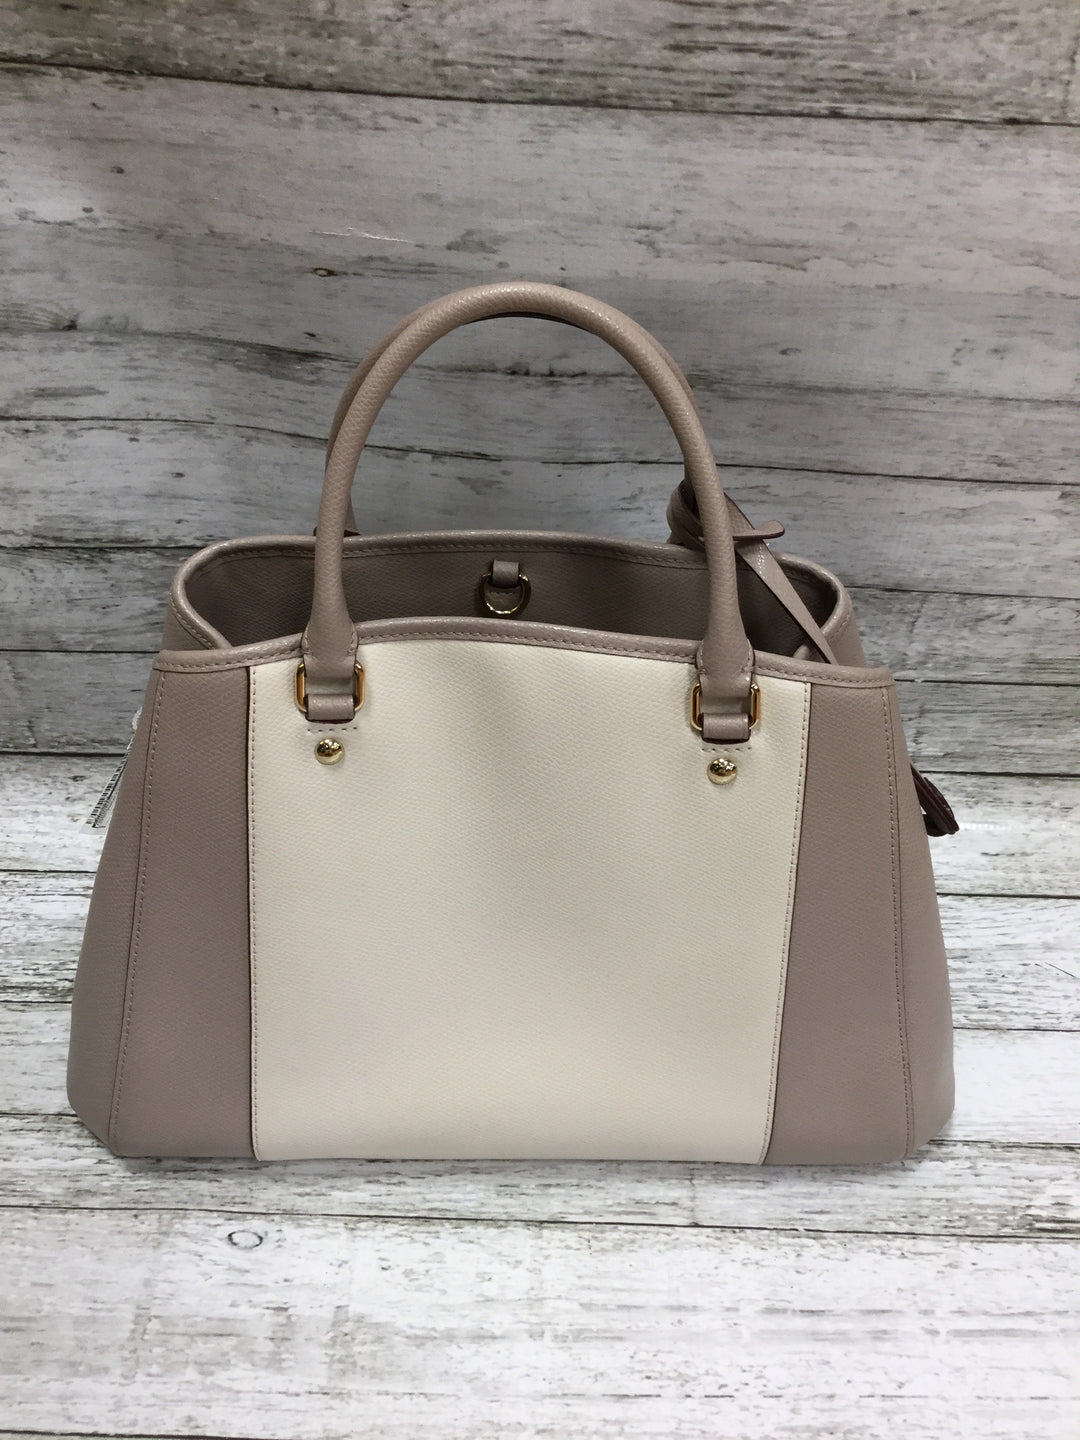 Photo #2 - BRAND: COACH <BR>STYLE: HANDBAG DESIGNER <BR>COLOR: GREY <BR>SIZE: MEDIUM <BR>SKU: 127-4942-1996